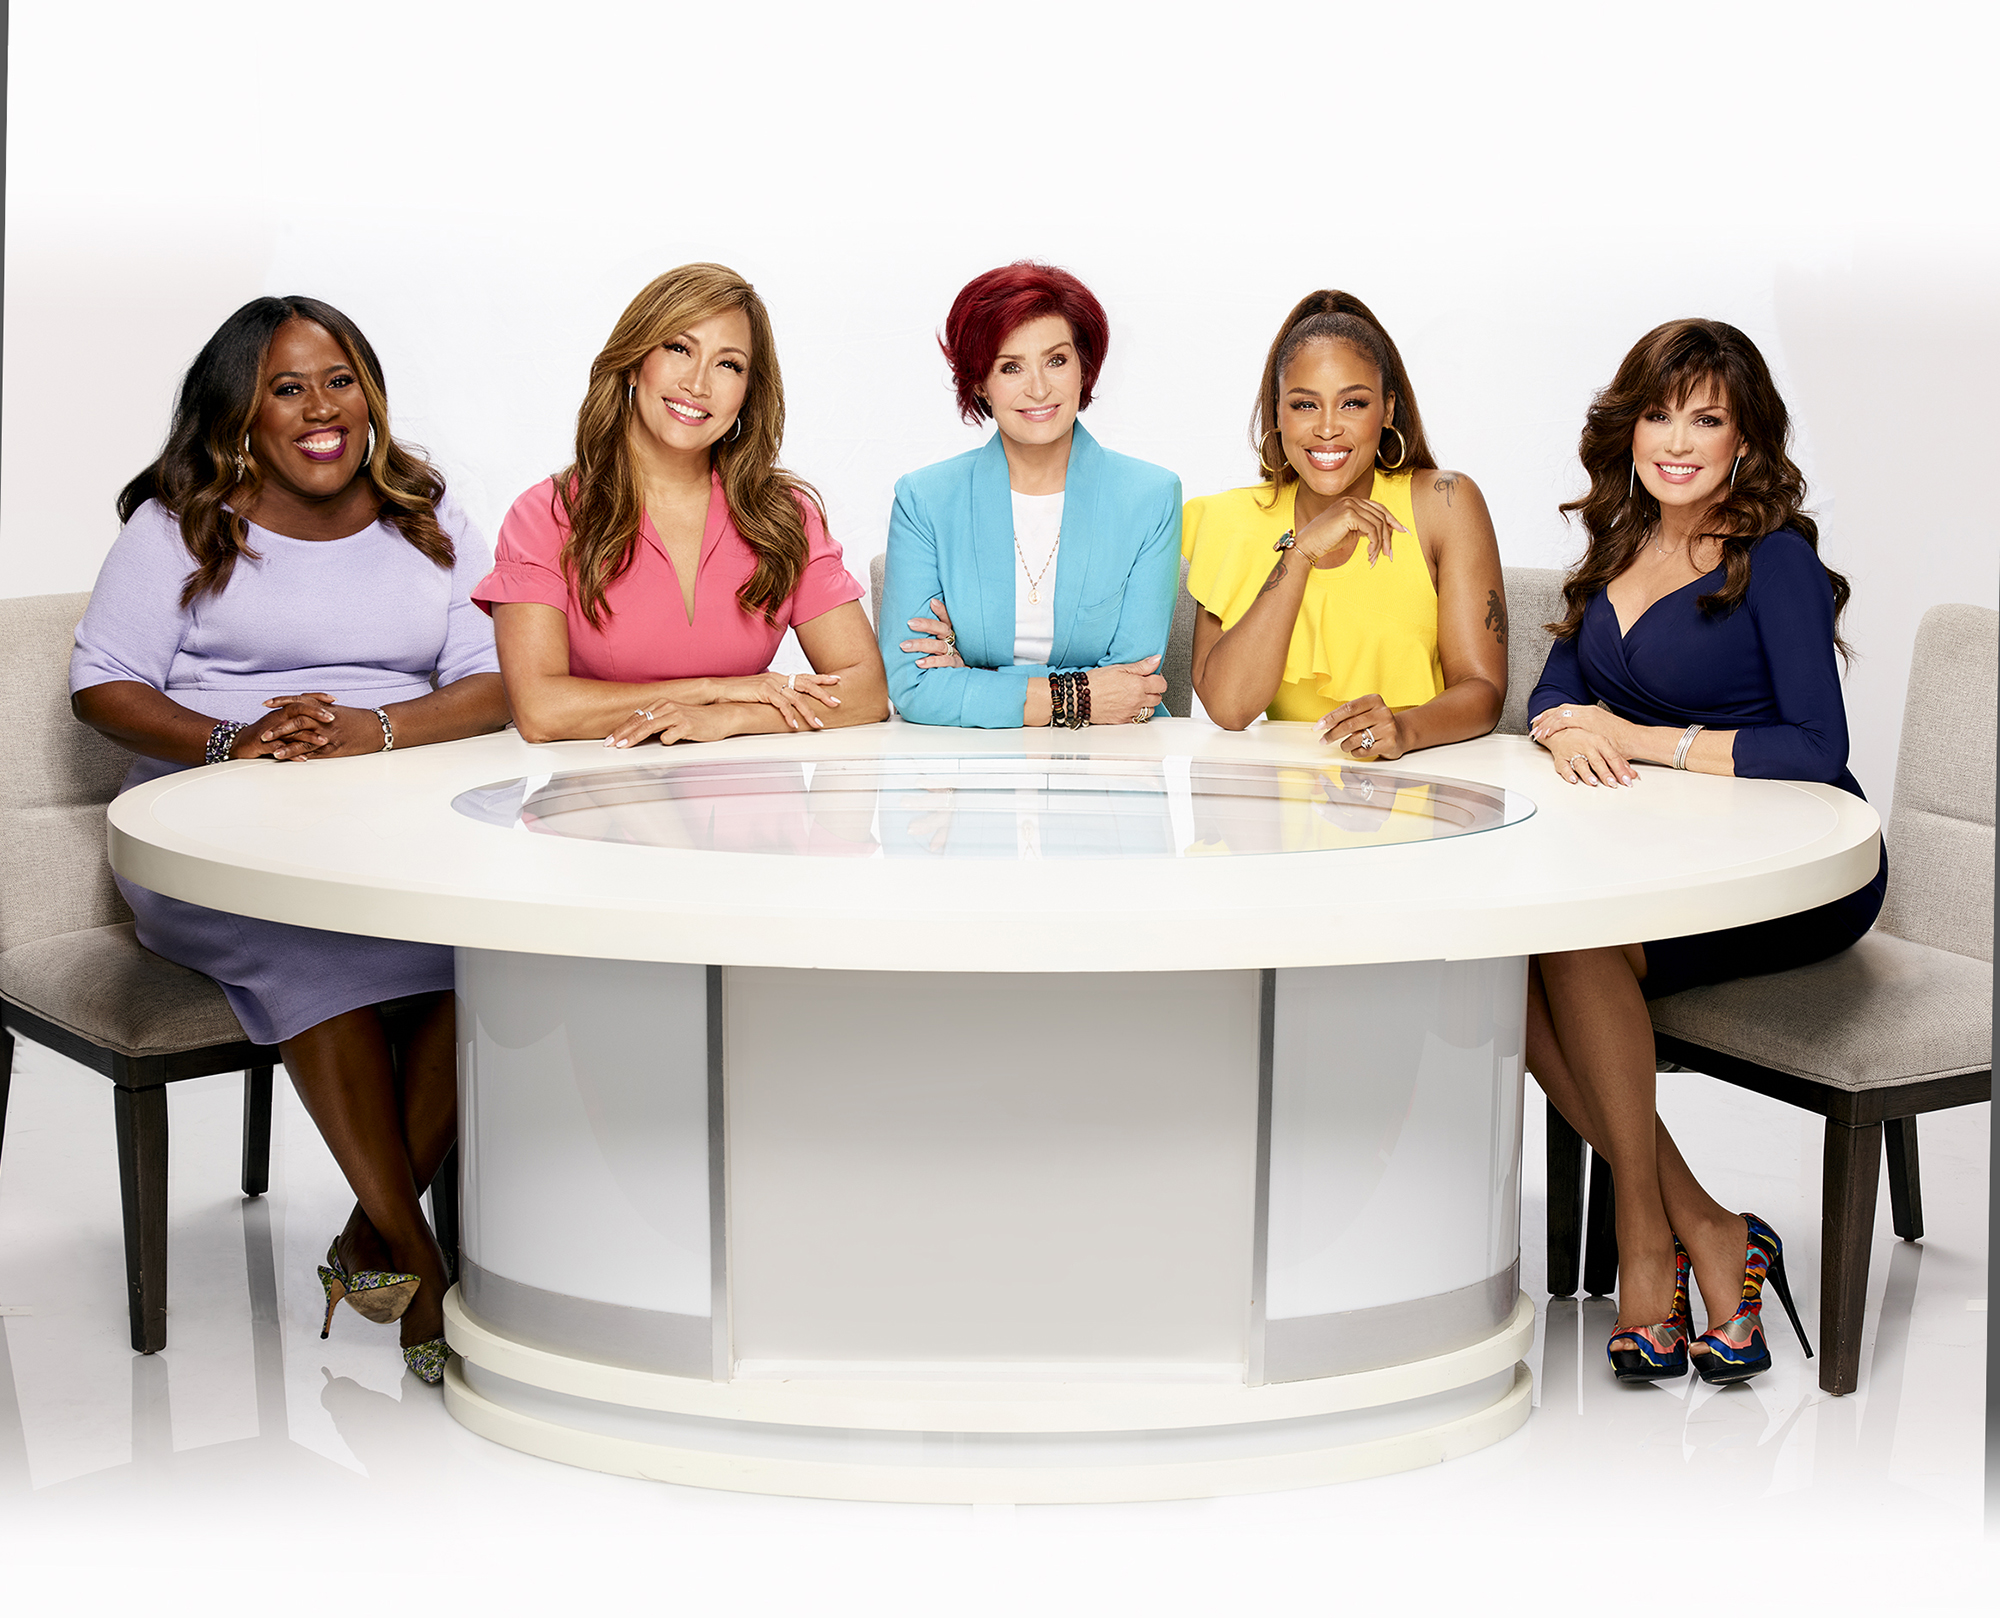 LOS ANGELES - SEPTEMBER 4: Pictured L-R: Sheryl Underwood, Carrie Ann Inaba, Sharon Osbourne, Eve Cooper, and Marie Osmond, hosts of the CBS series THE TALK, airing Weekdays 2:00-3:00 PM, ET; 1:00-2:00 PM, PT on the CBS Television Network.  (Photo by Art Streiber/CBS via Getty Images)